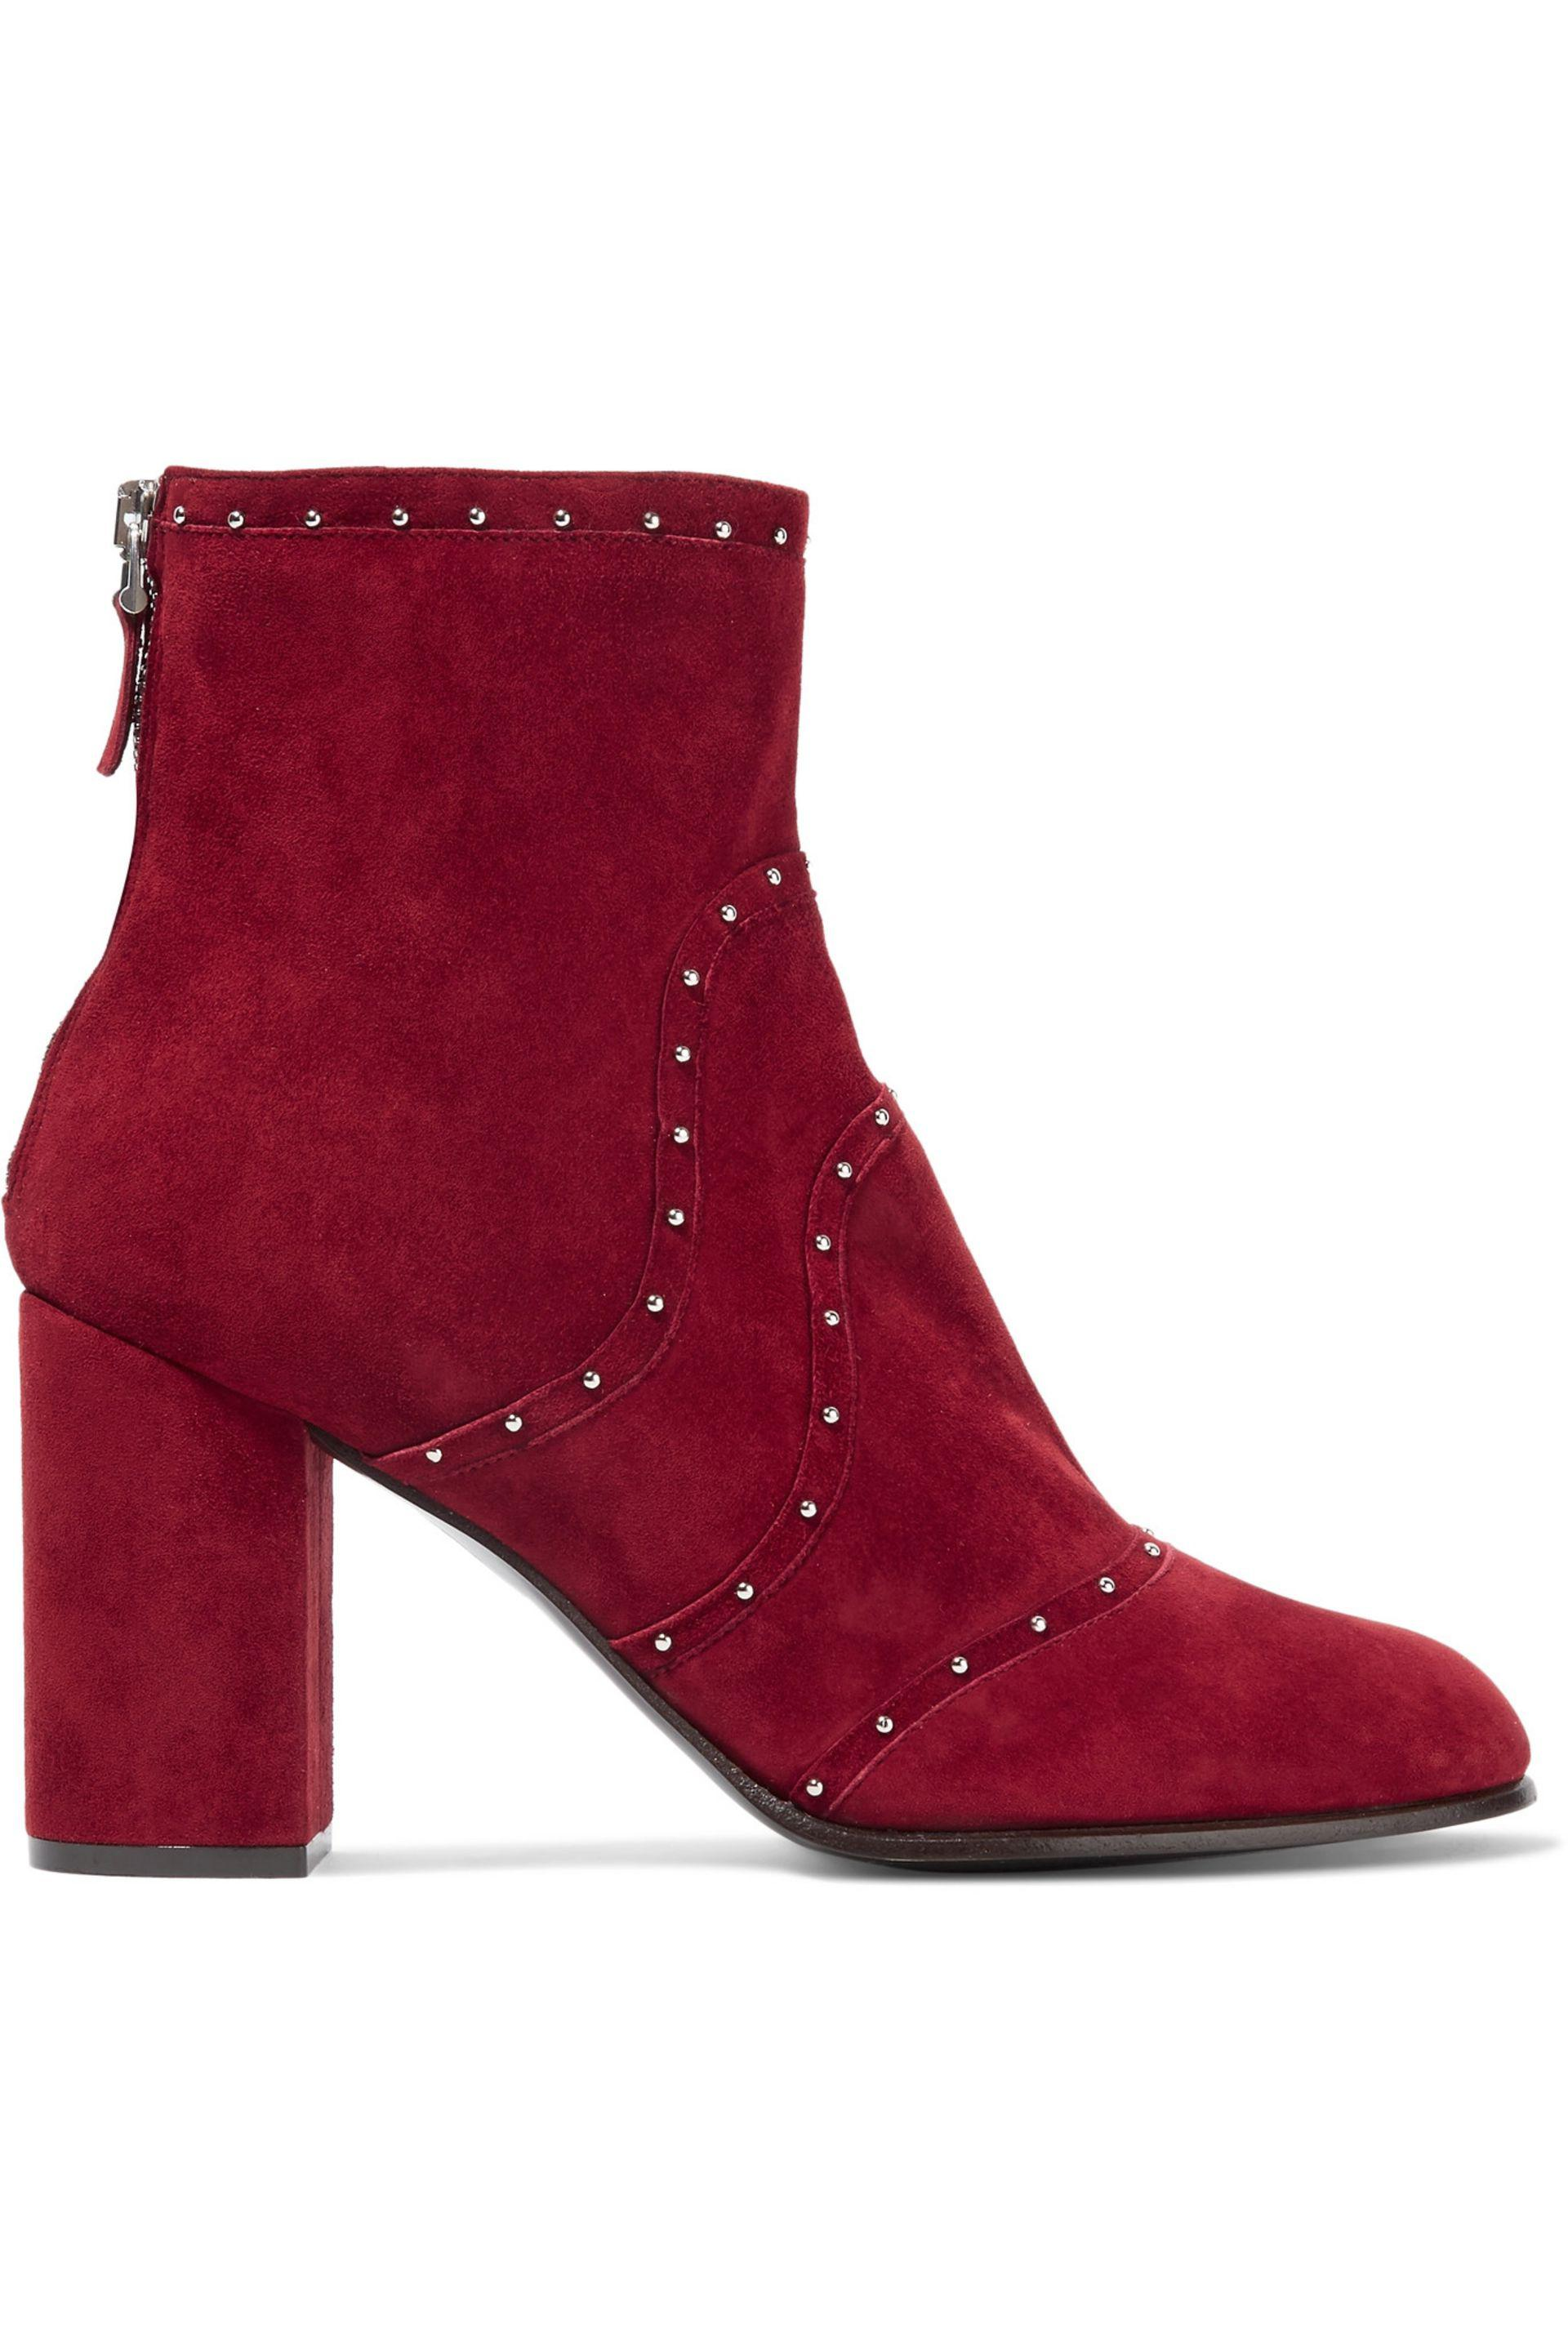 Belstaff Lace-Up Suede Ankle Booties outlet pick a best clearance low price GoVeNm35